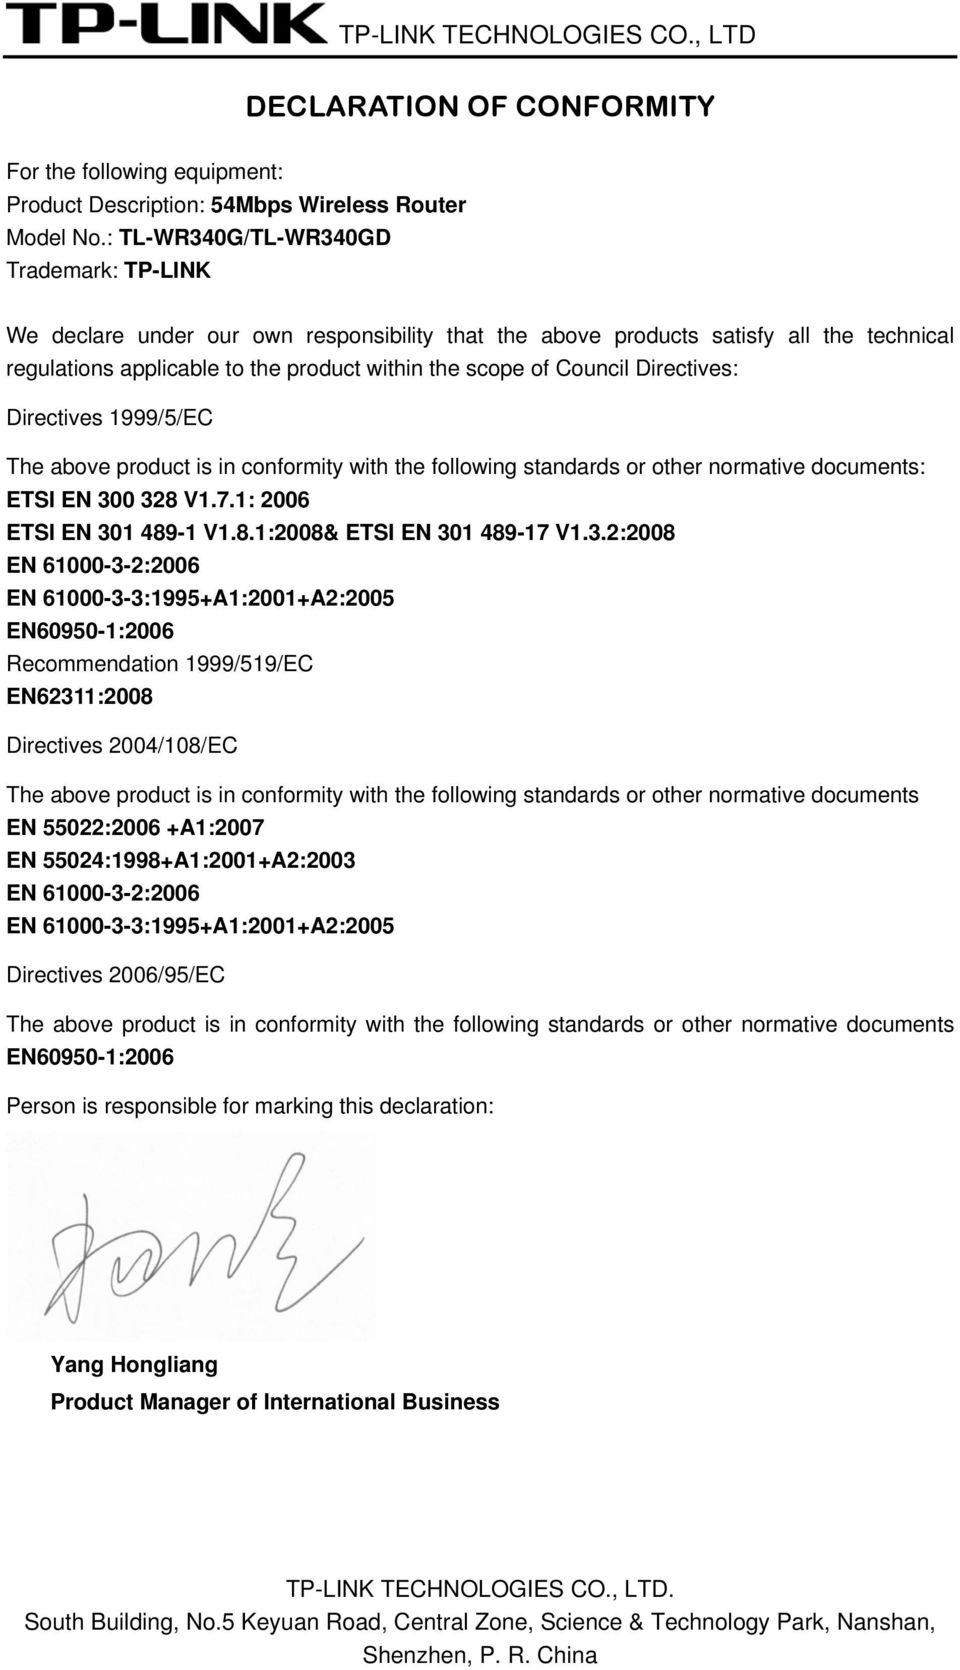 Directives: Directives 1999/5/EC The above product is in conformity with the following standards or other normative documents: ETSI EN 300 328 V1.7.1: 2006 ETSI EN 301 489-1 V1.8.1:2008& ETSI EN 301 489-17 V1.